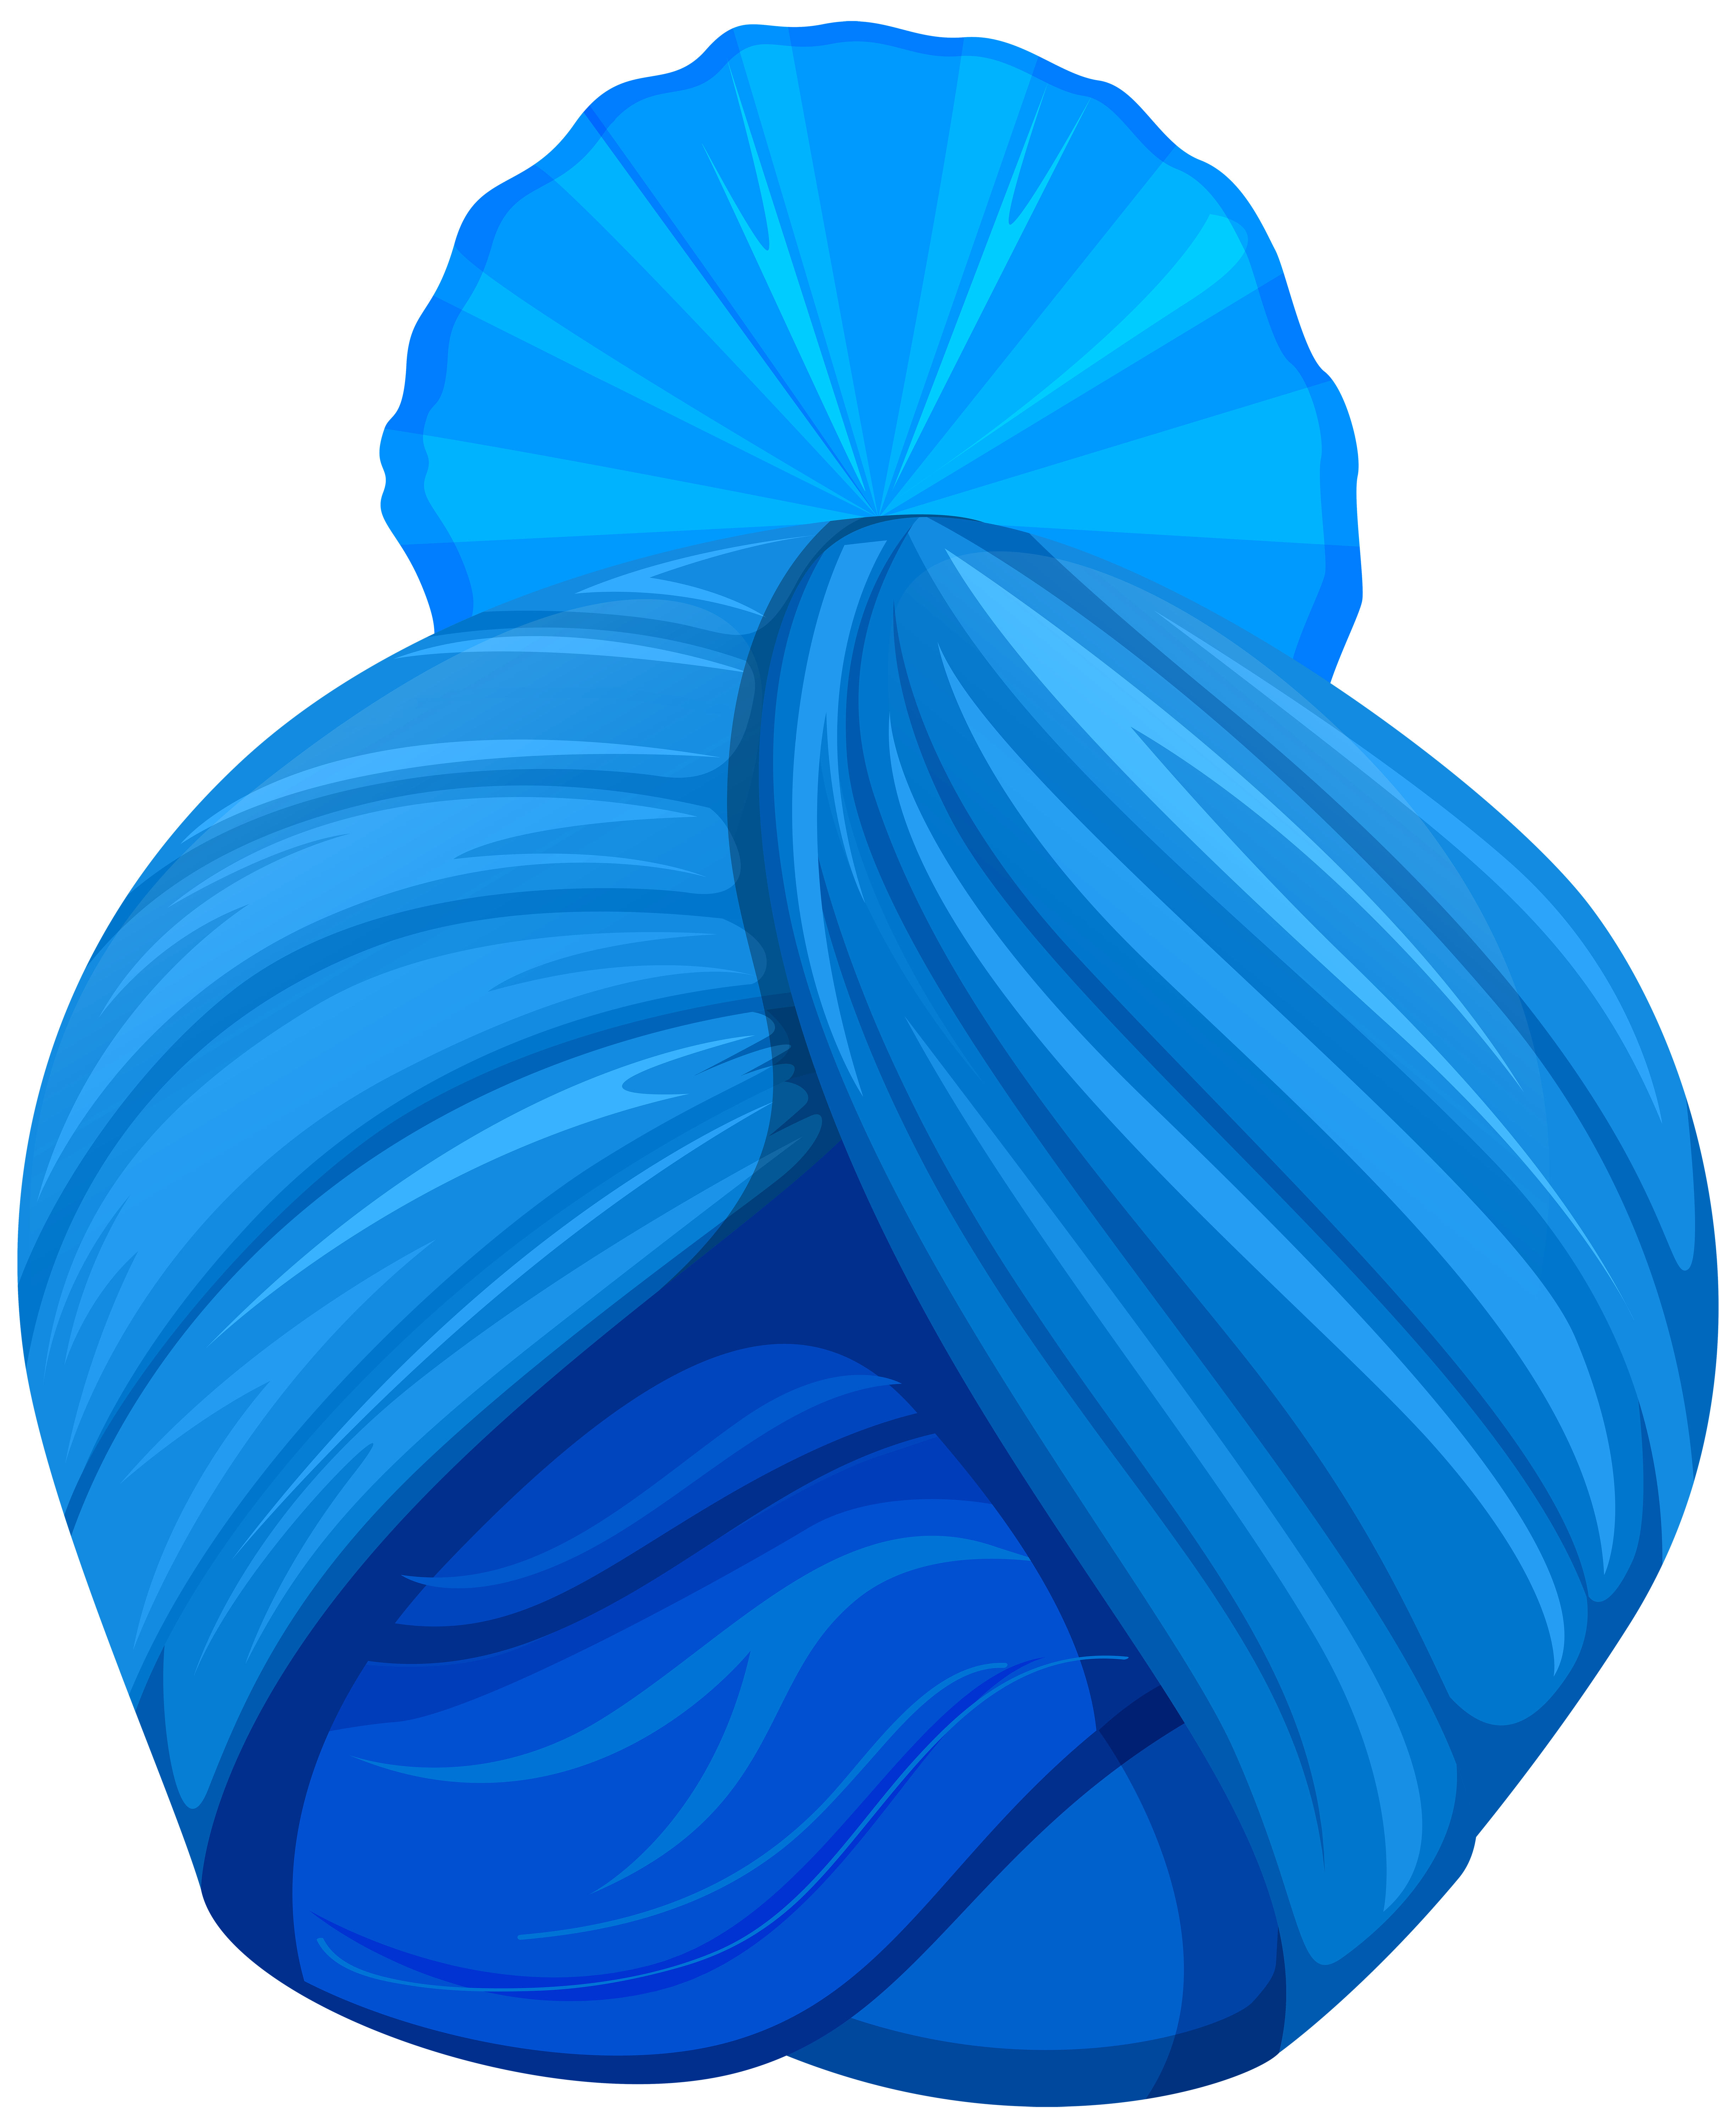 India Turban Free PNG Clip Art Image.